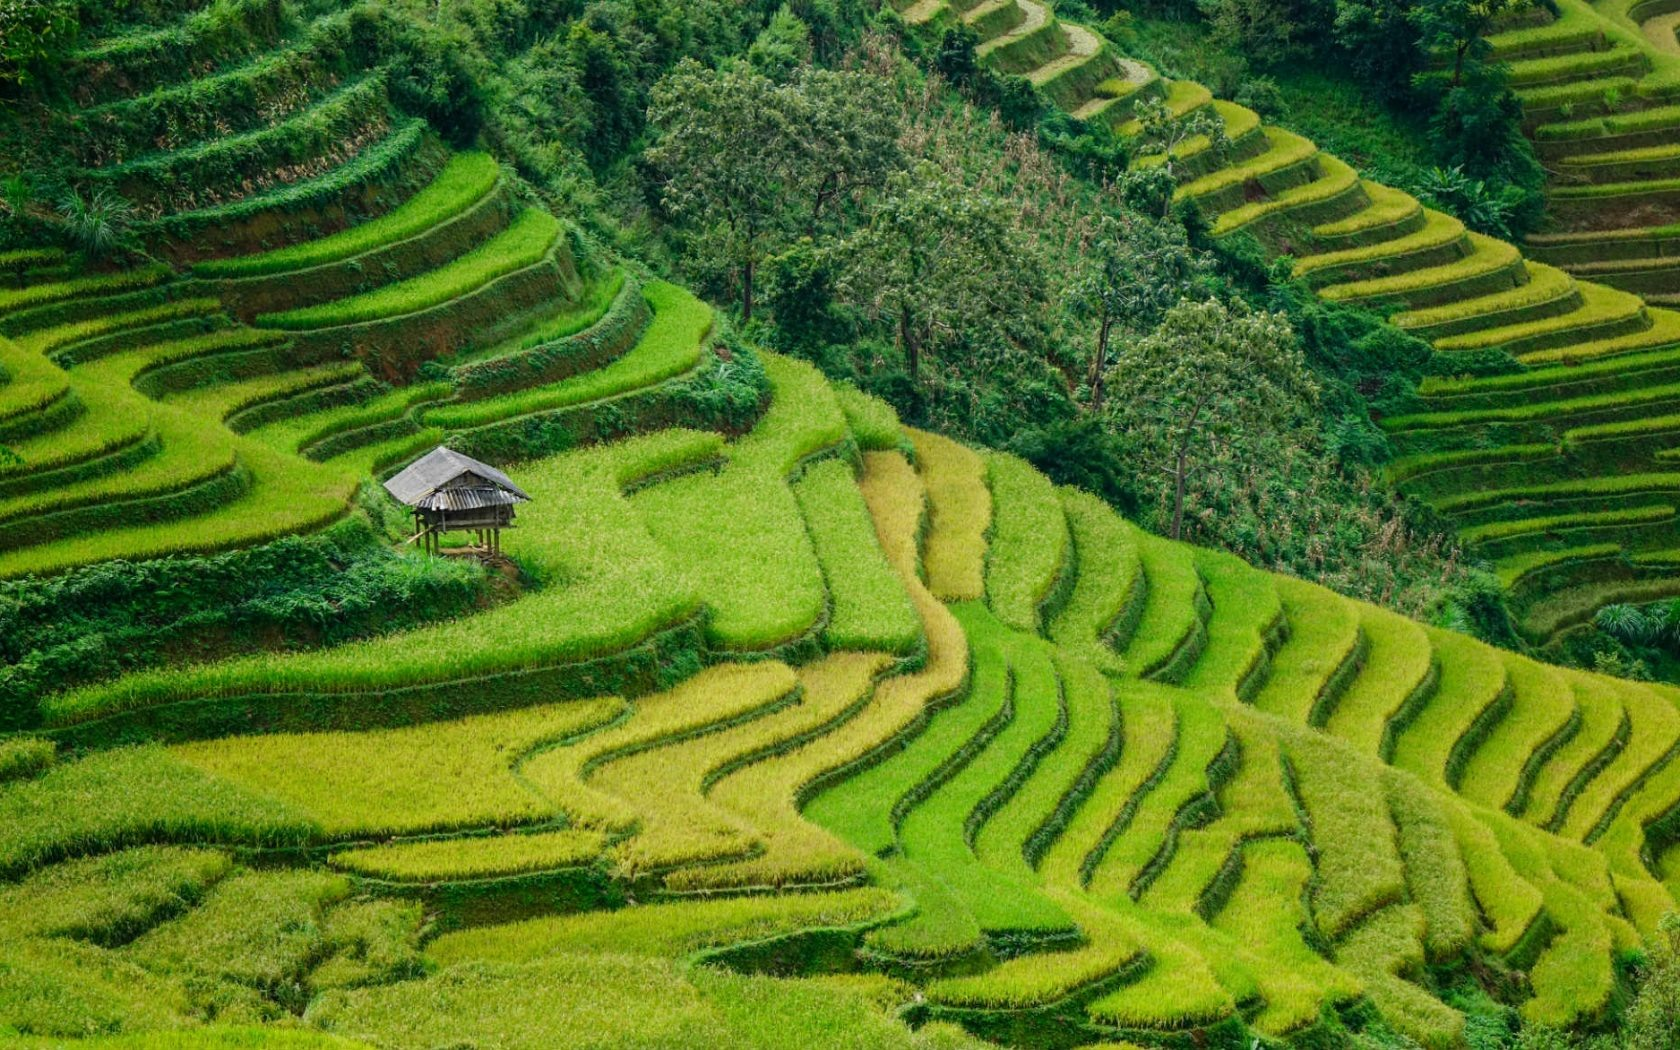 Terraced fields covered with fog in the early morning or with the green colour of rice and maize when the sun rises associated with the cone-shaped mountains are always impressive to visitors. Besides, ethnic villages in Sapa where traditional lifestyles are being maintained are also attractive to visitors.